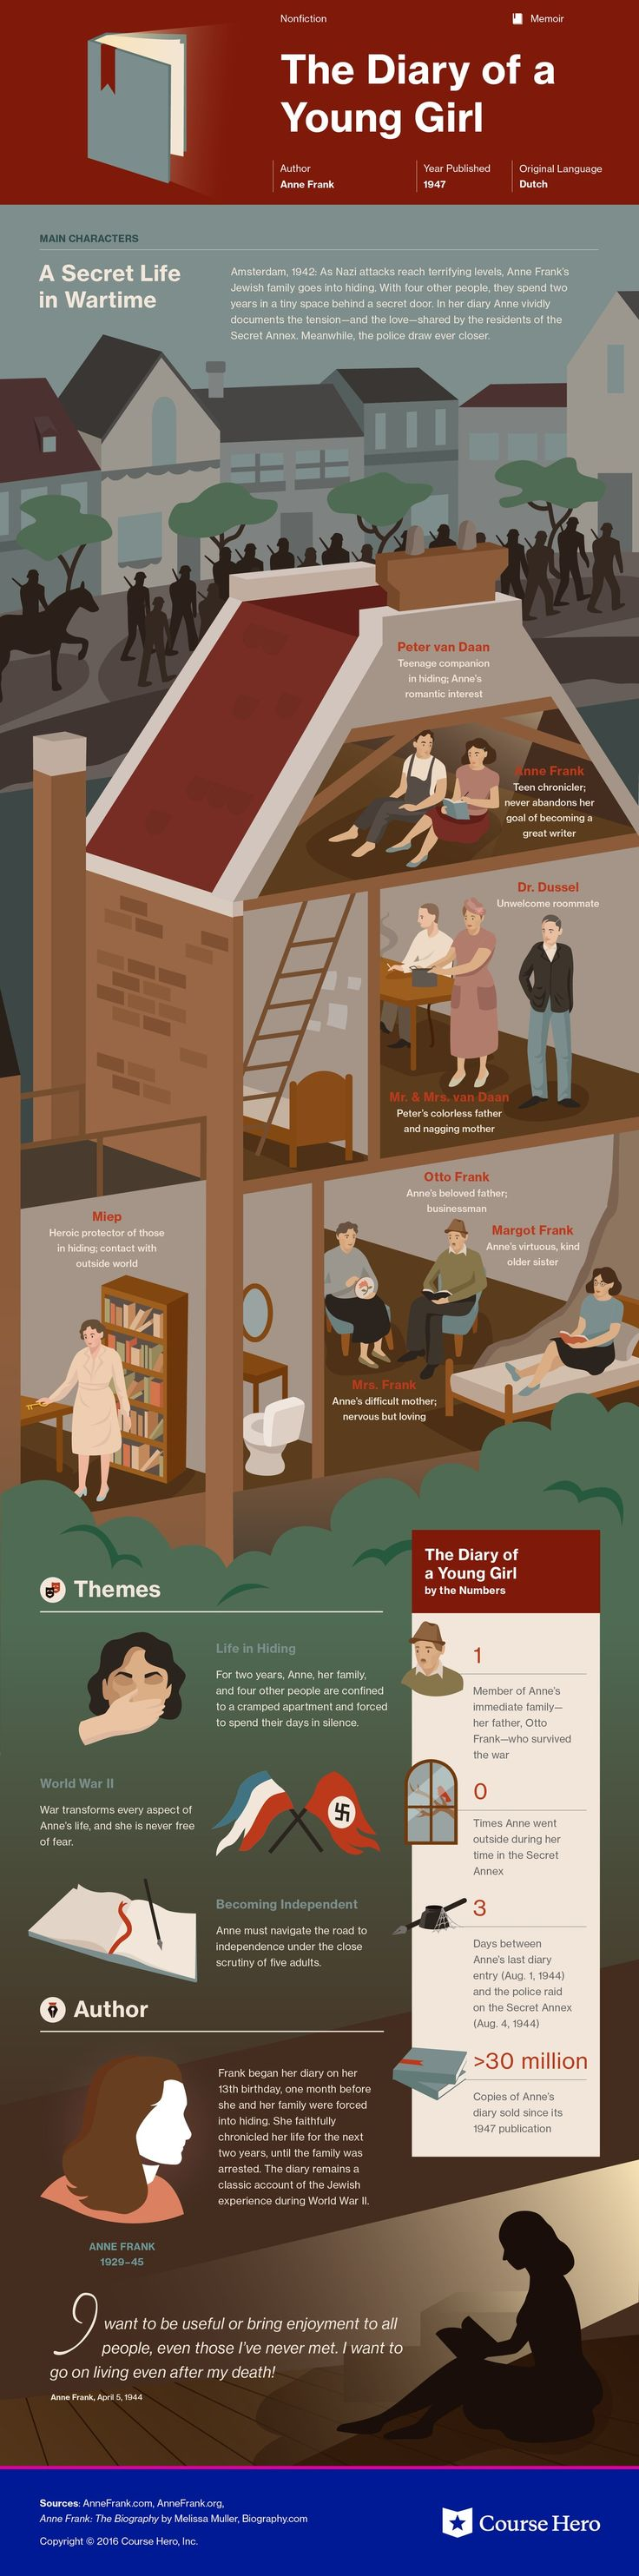 best ideas about night elie wiesel summary music the diary of a young girl infographic